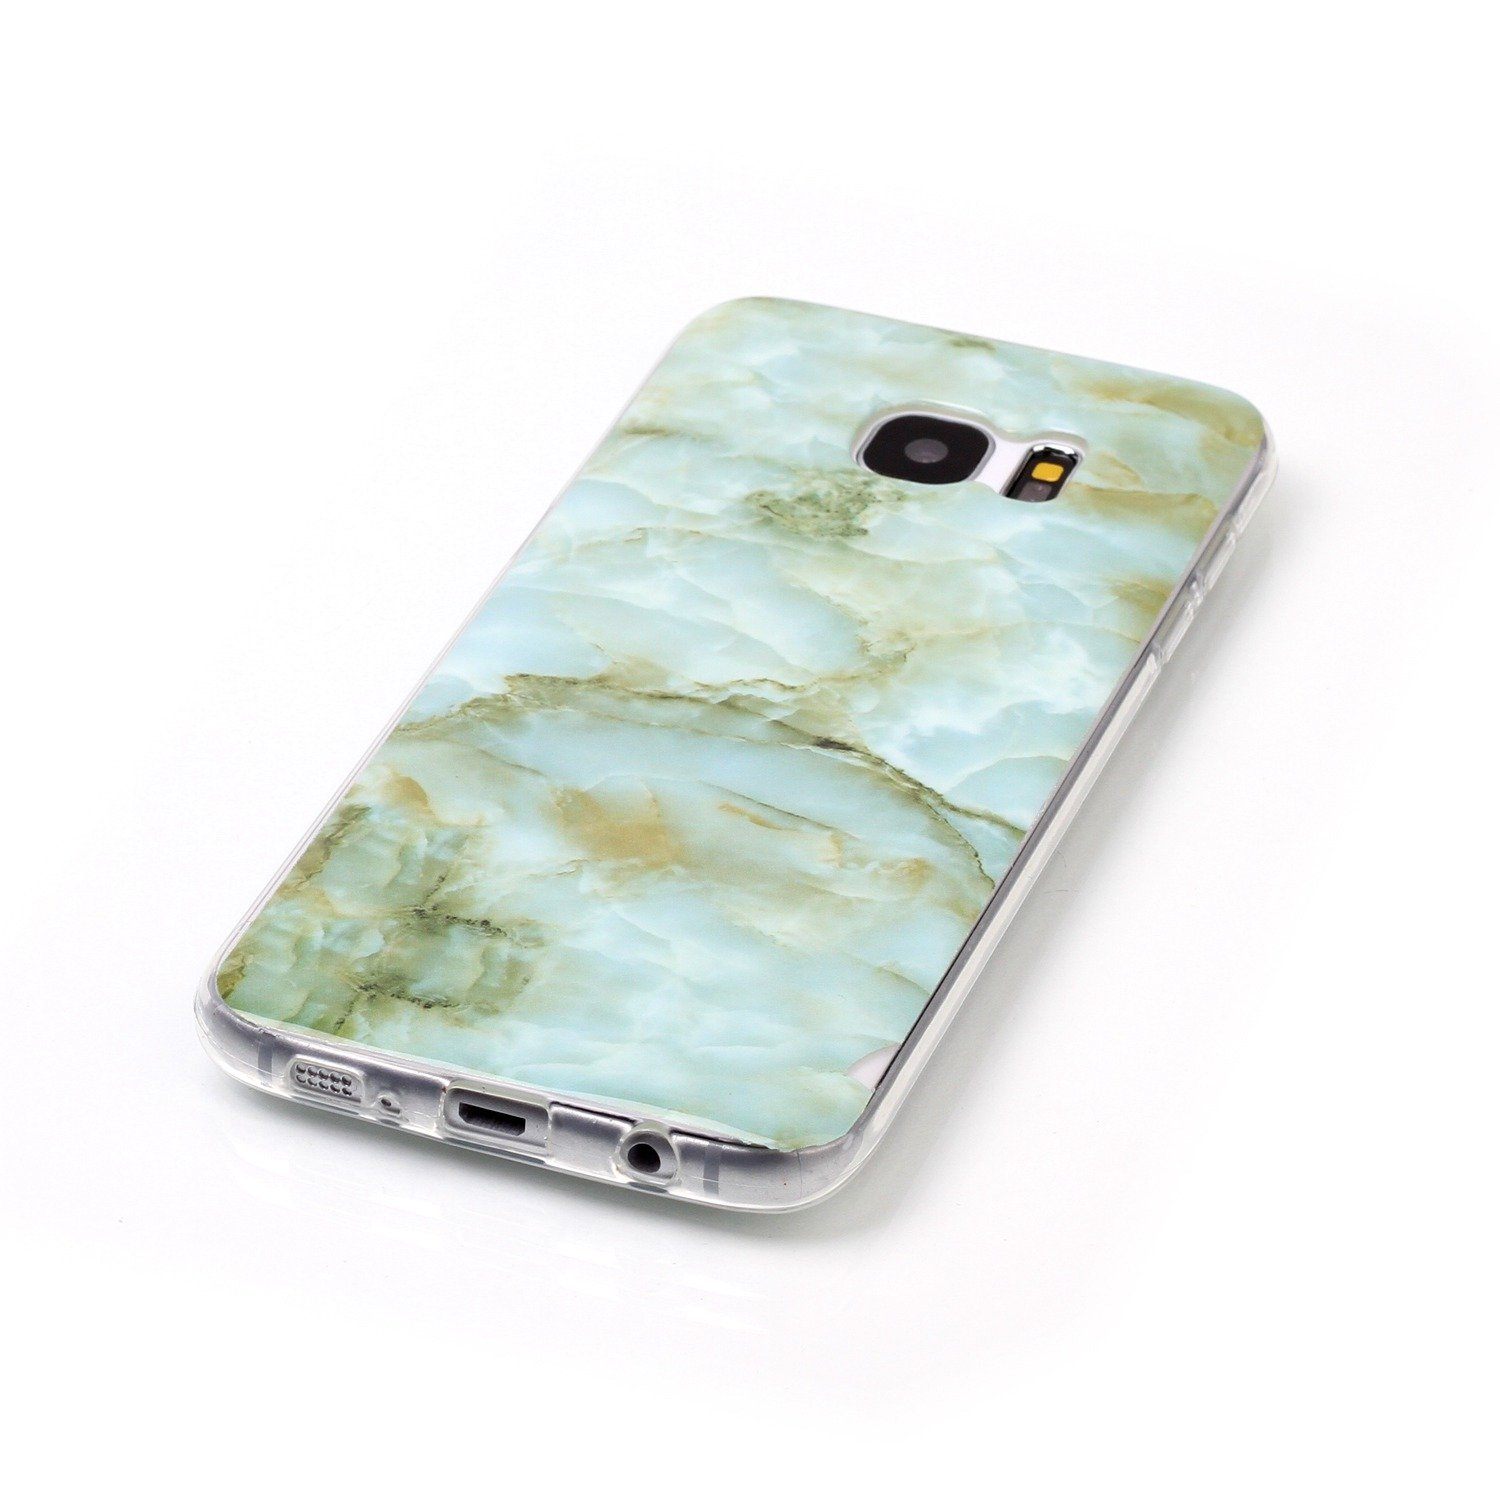 Cover Galaxy S7 Edge,Custodia Galaxy S7 Edge,Lucido marmo texture pattern TPU morbida Custodia in Silicone marmo per Gal Super Sottile Bumper Case Custodia Cover per Galaxy S7 Edge,Bianco/ nero Marble